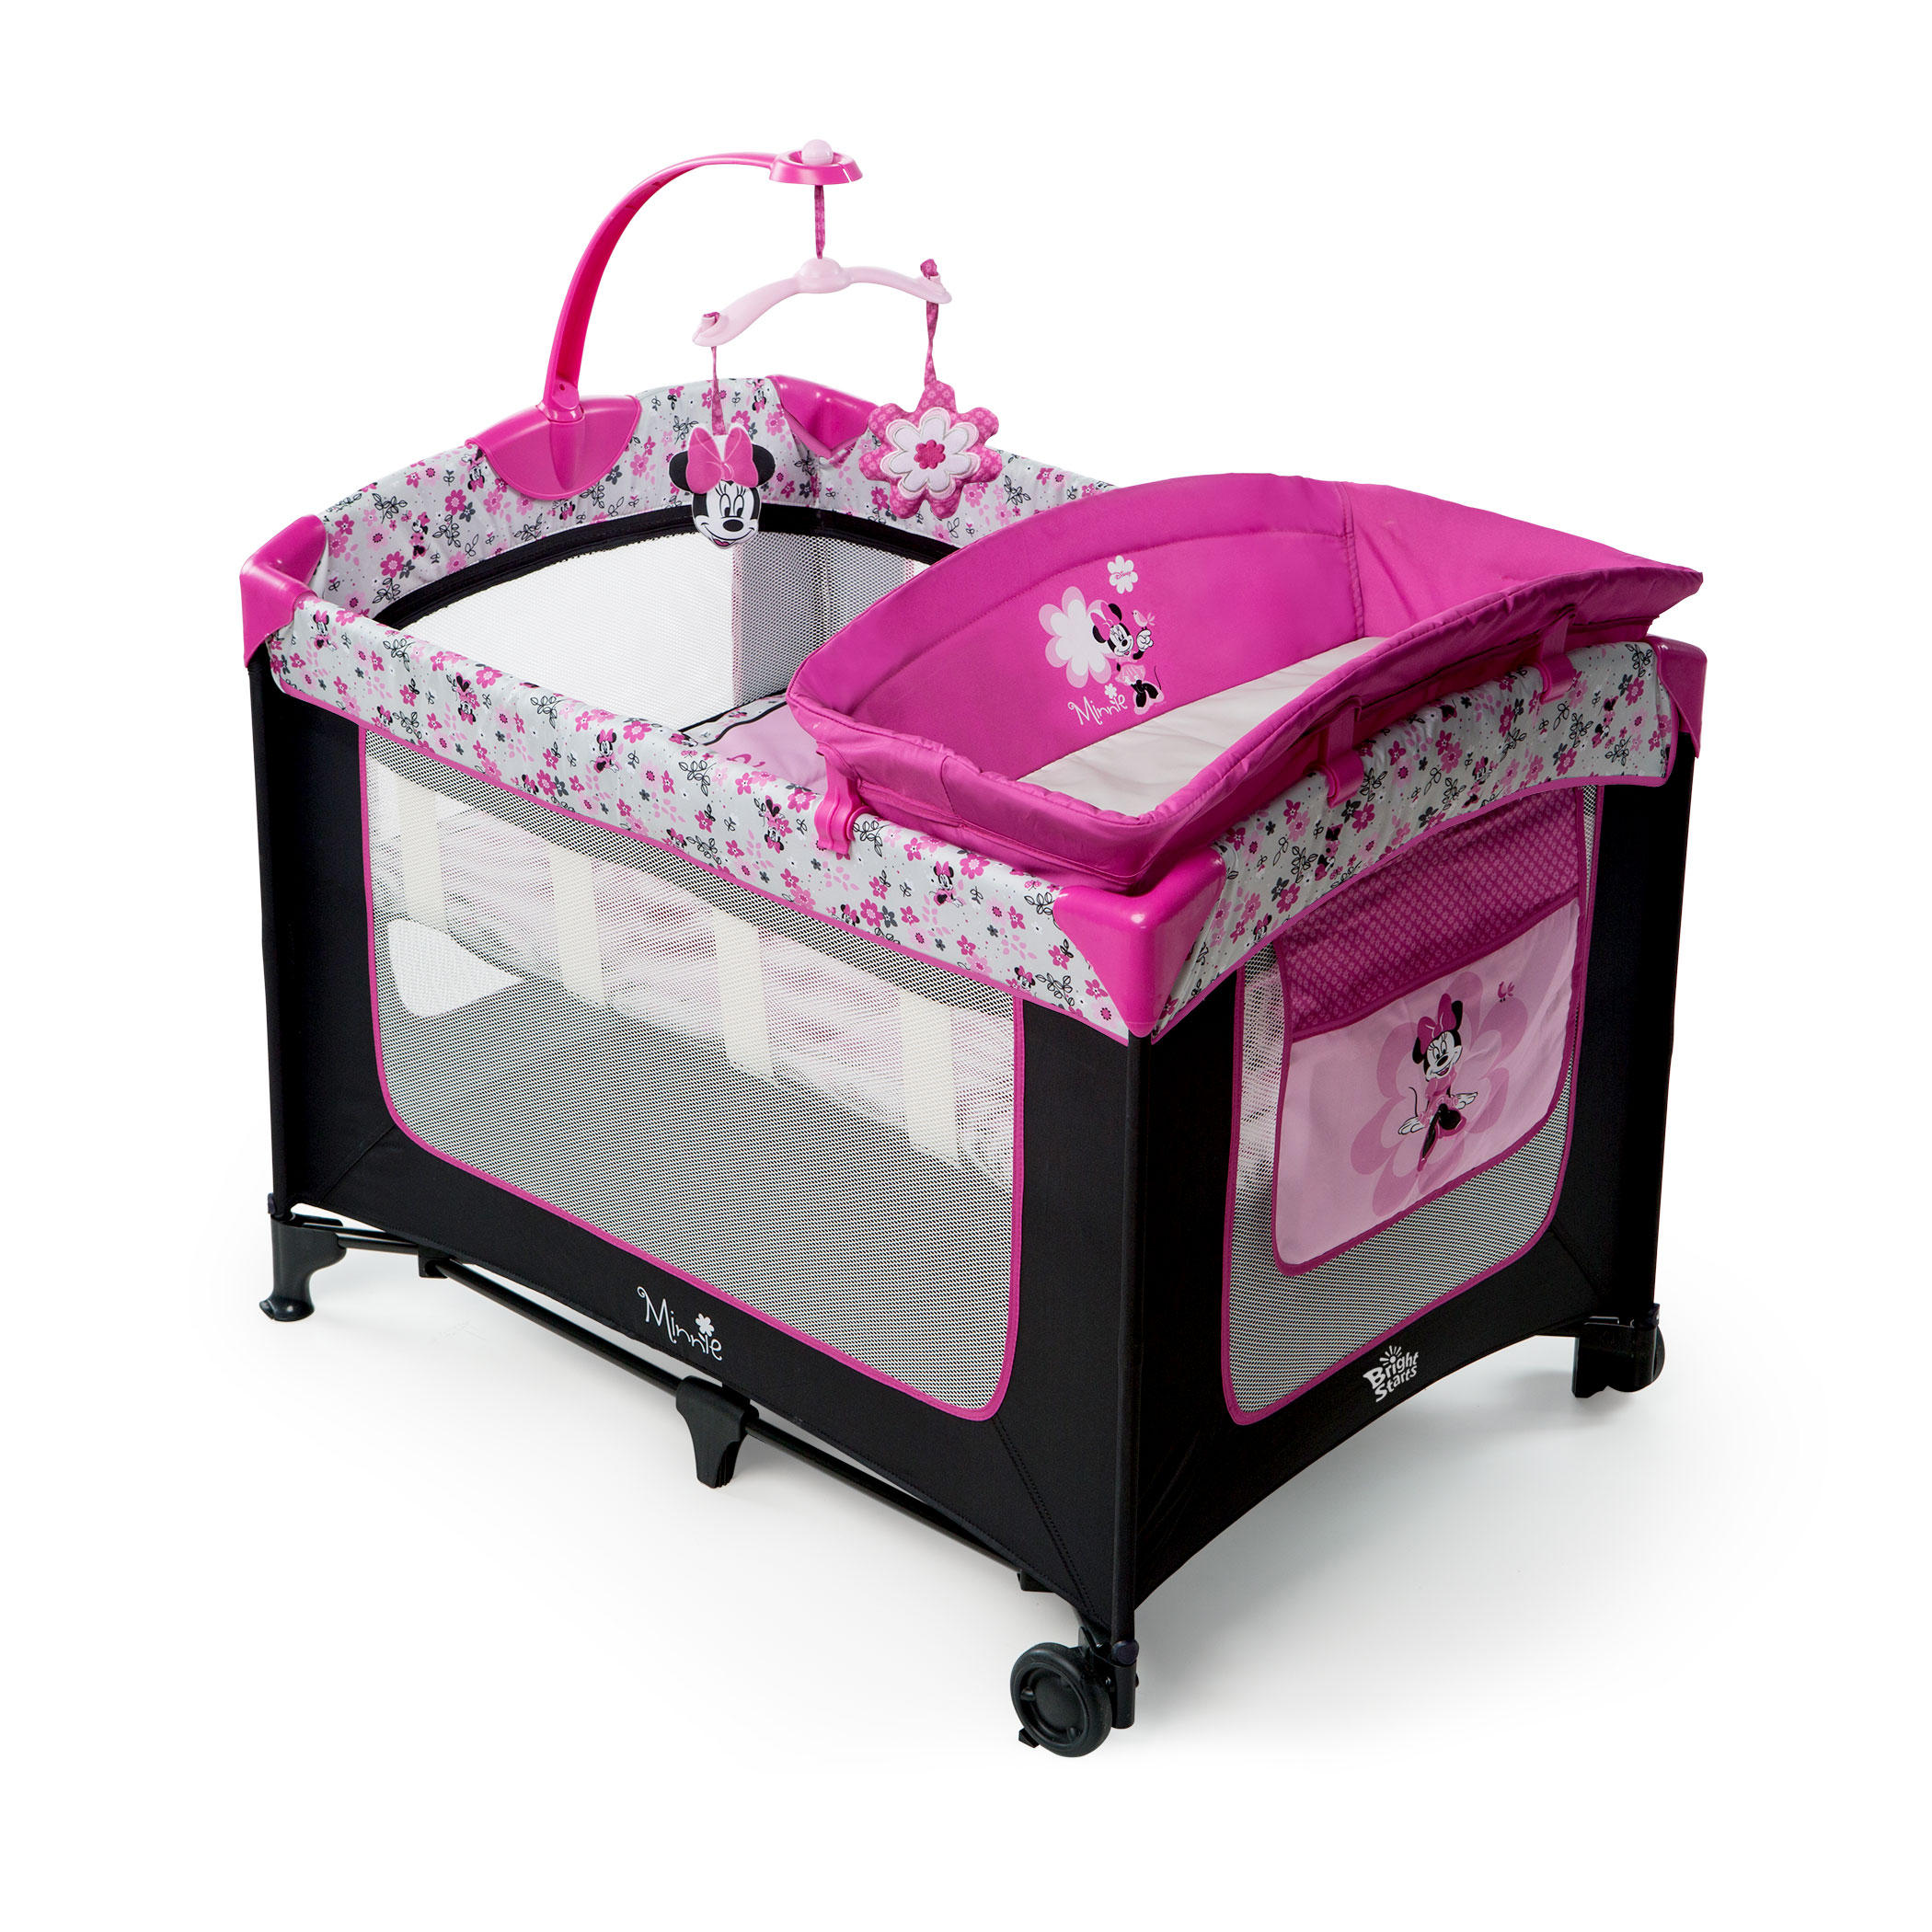 MINNIE MOUSE Garden Delights Playard